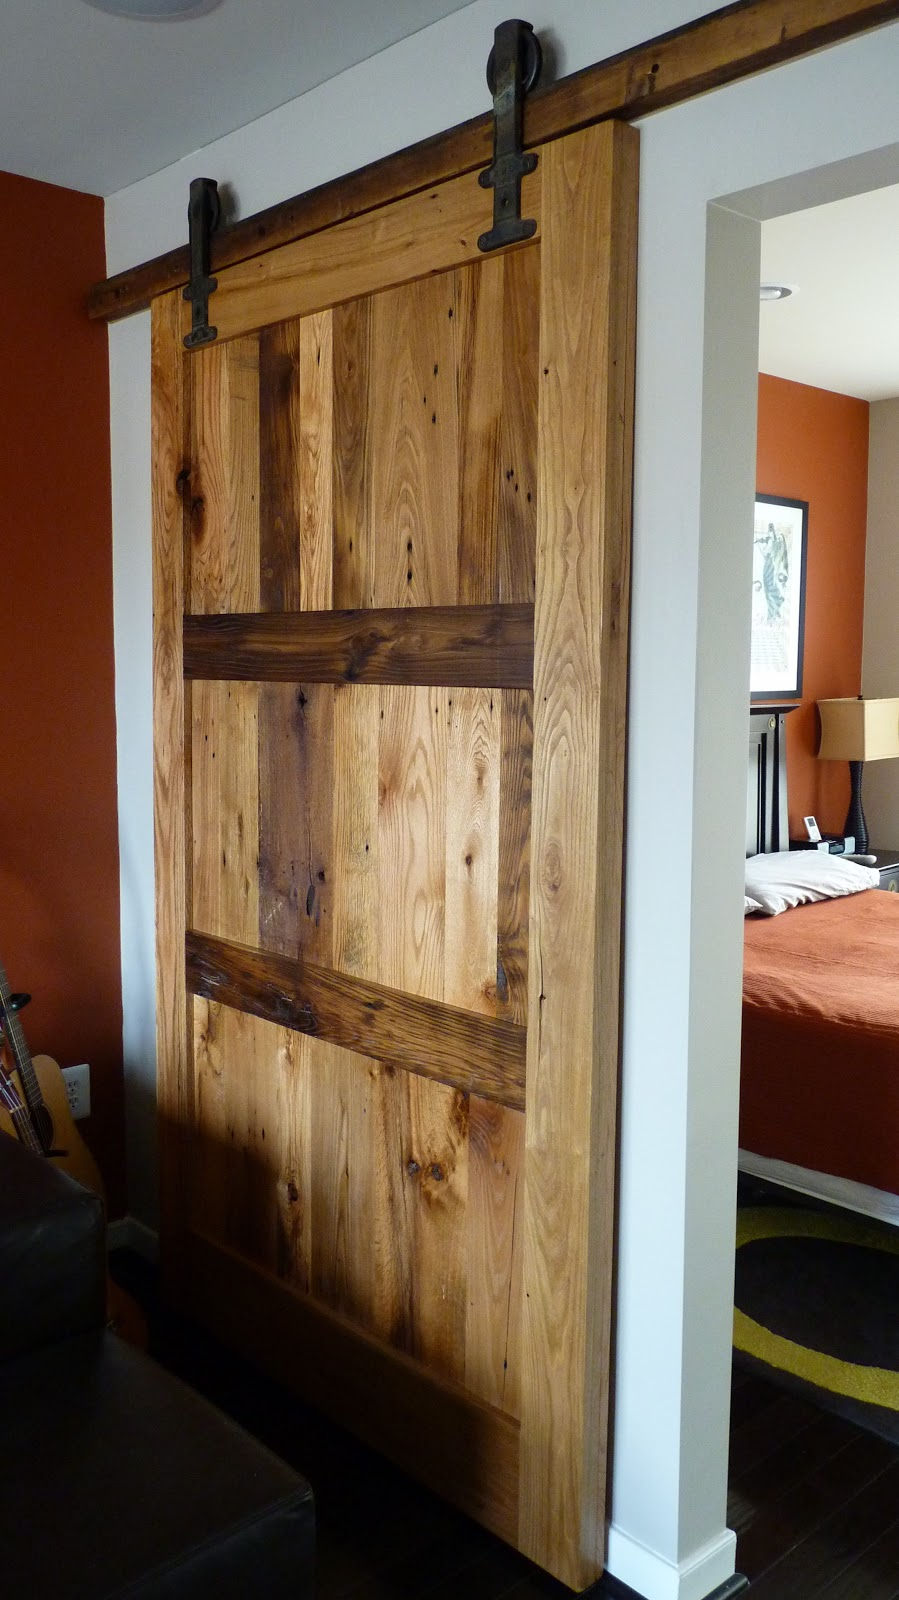 Sliding Barn Door Designs: DiSabella Design: Custom Sliding Barn Door